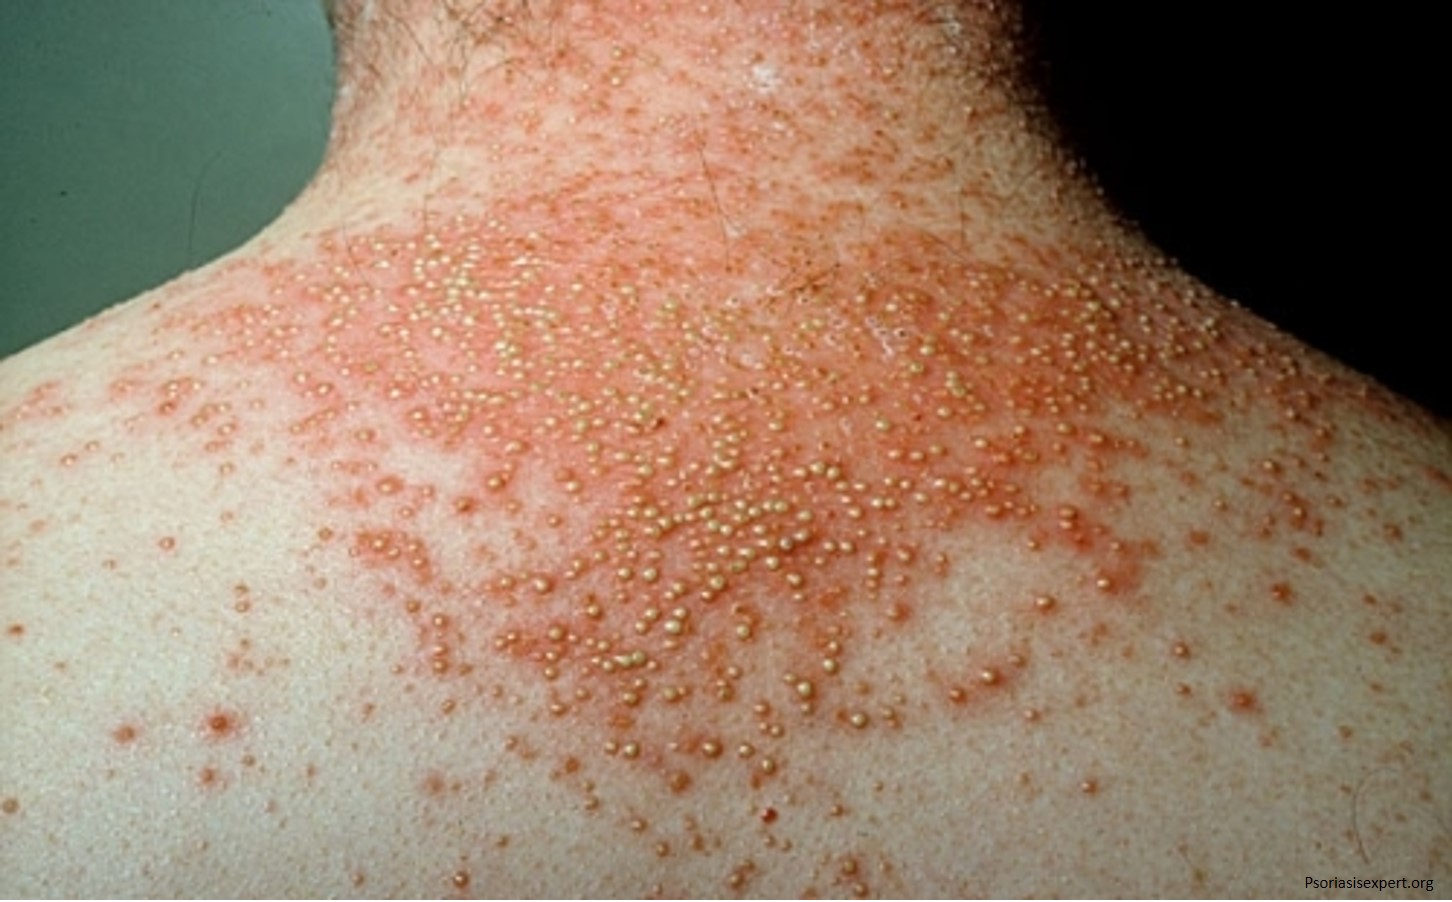 New drug clears psoriasis in clinical trials